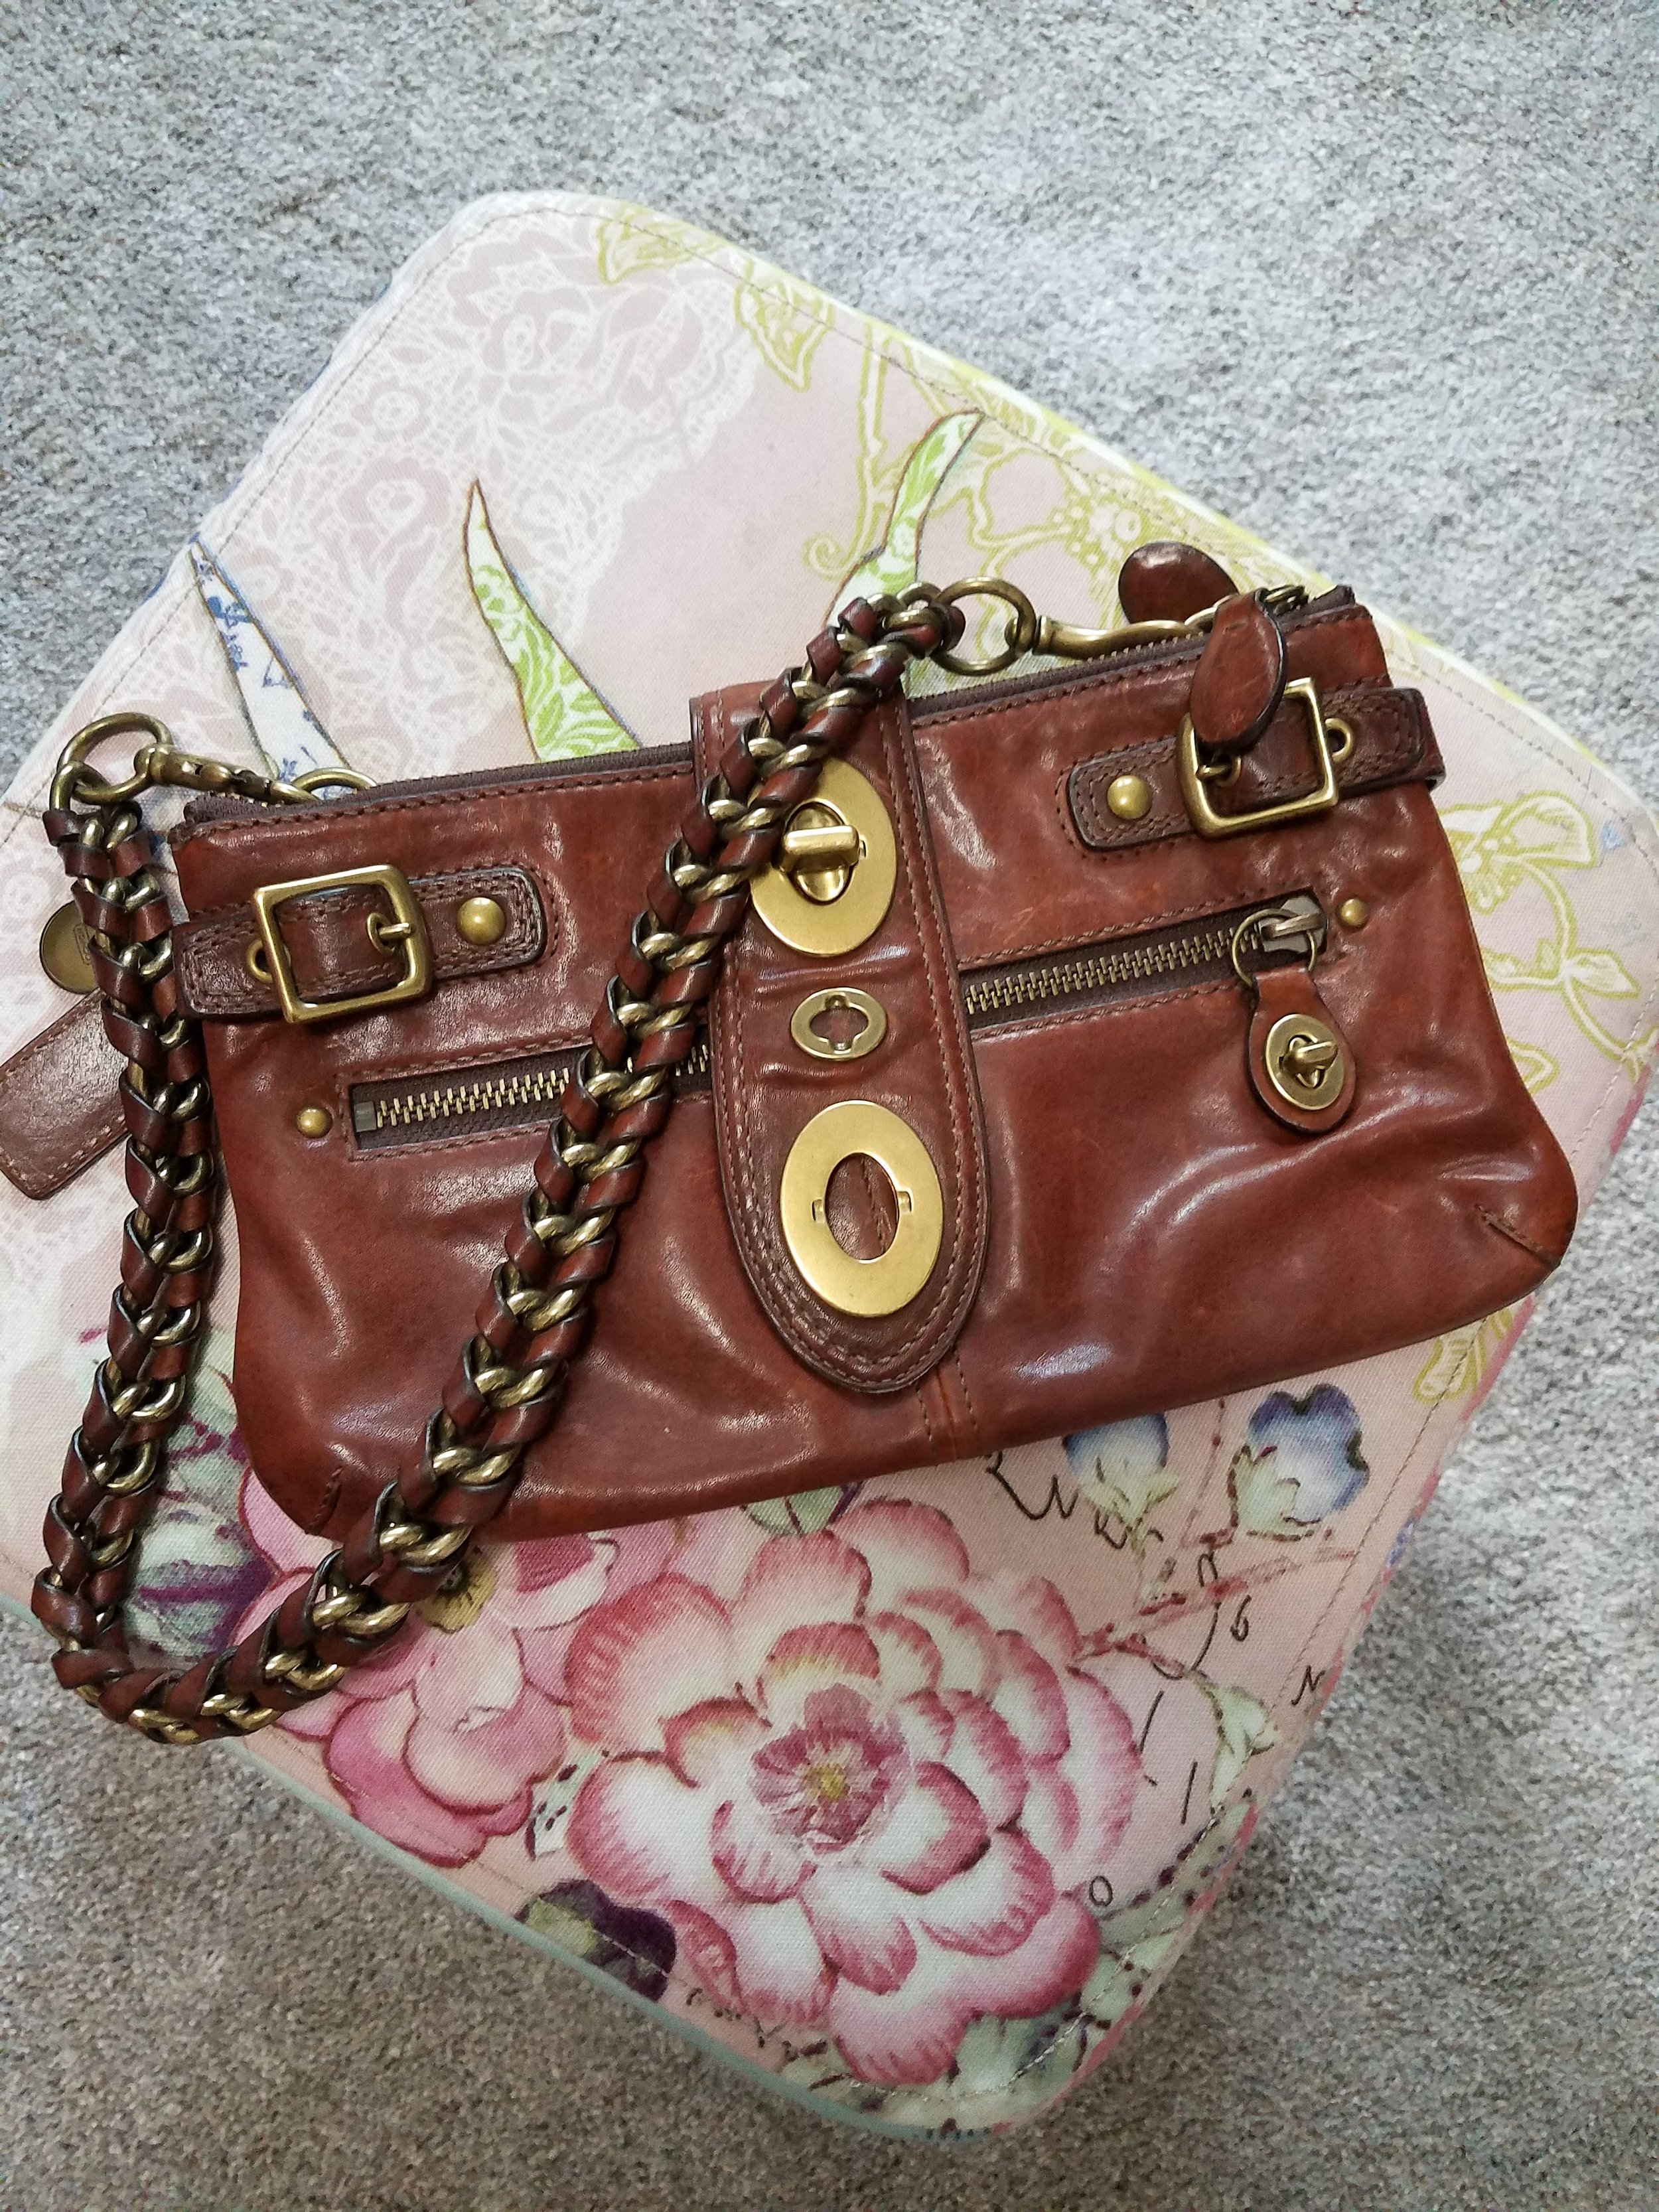 Vintage Coach - I purchased this lovely at one of my favorite consignment stores in Grand Rapids.  This bag has, and will, stand the test of time and fashion. What I love:  the hardware, the strap, and the rich brown color.  Rich browns are also on trend for Fall so there you go!